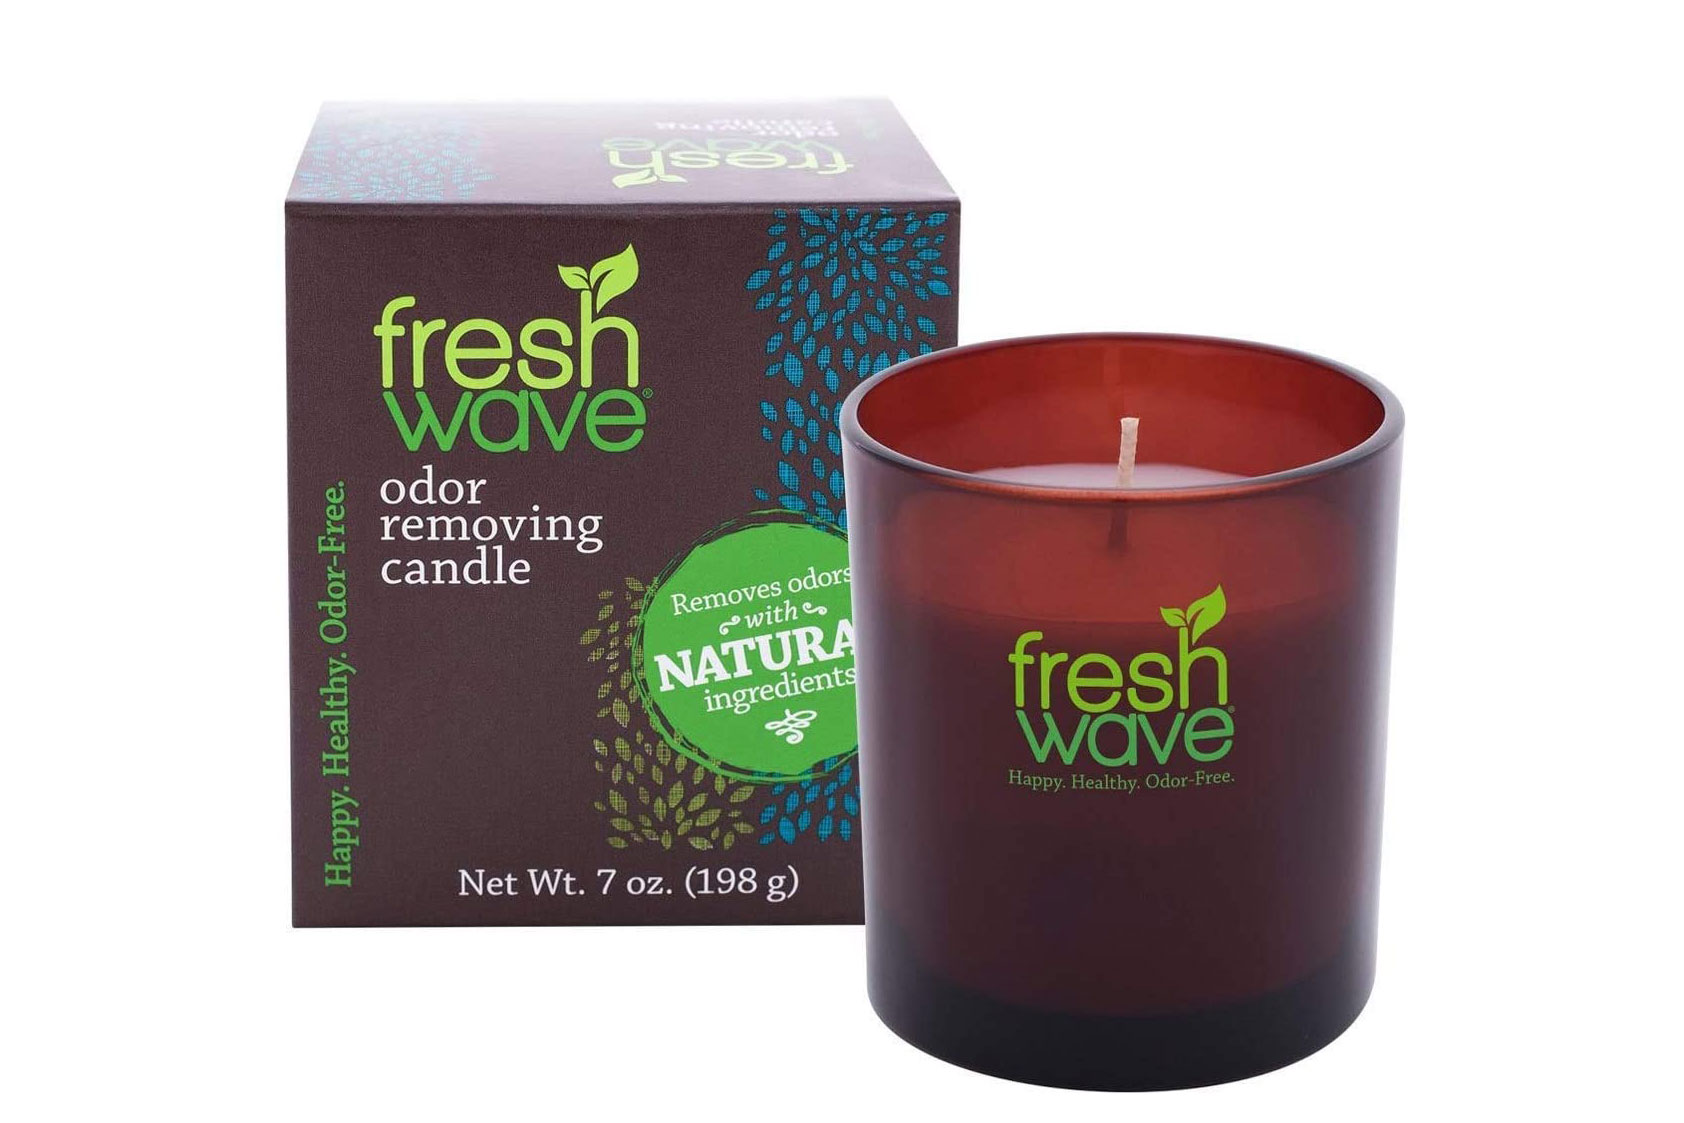 Fresh Wave Candle next to box